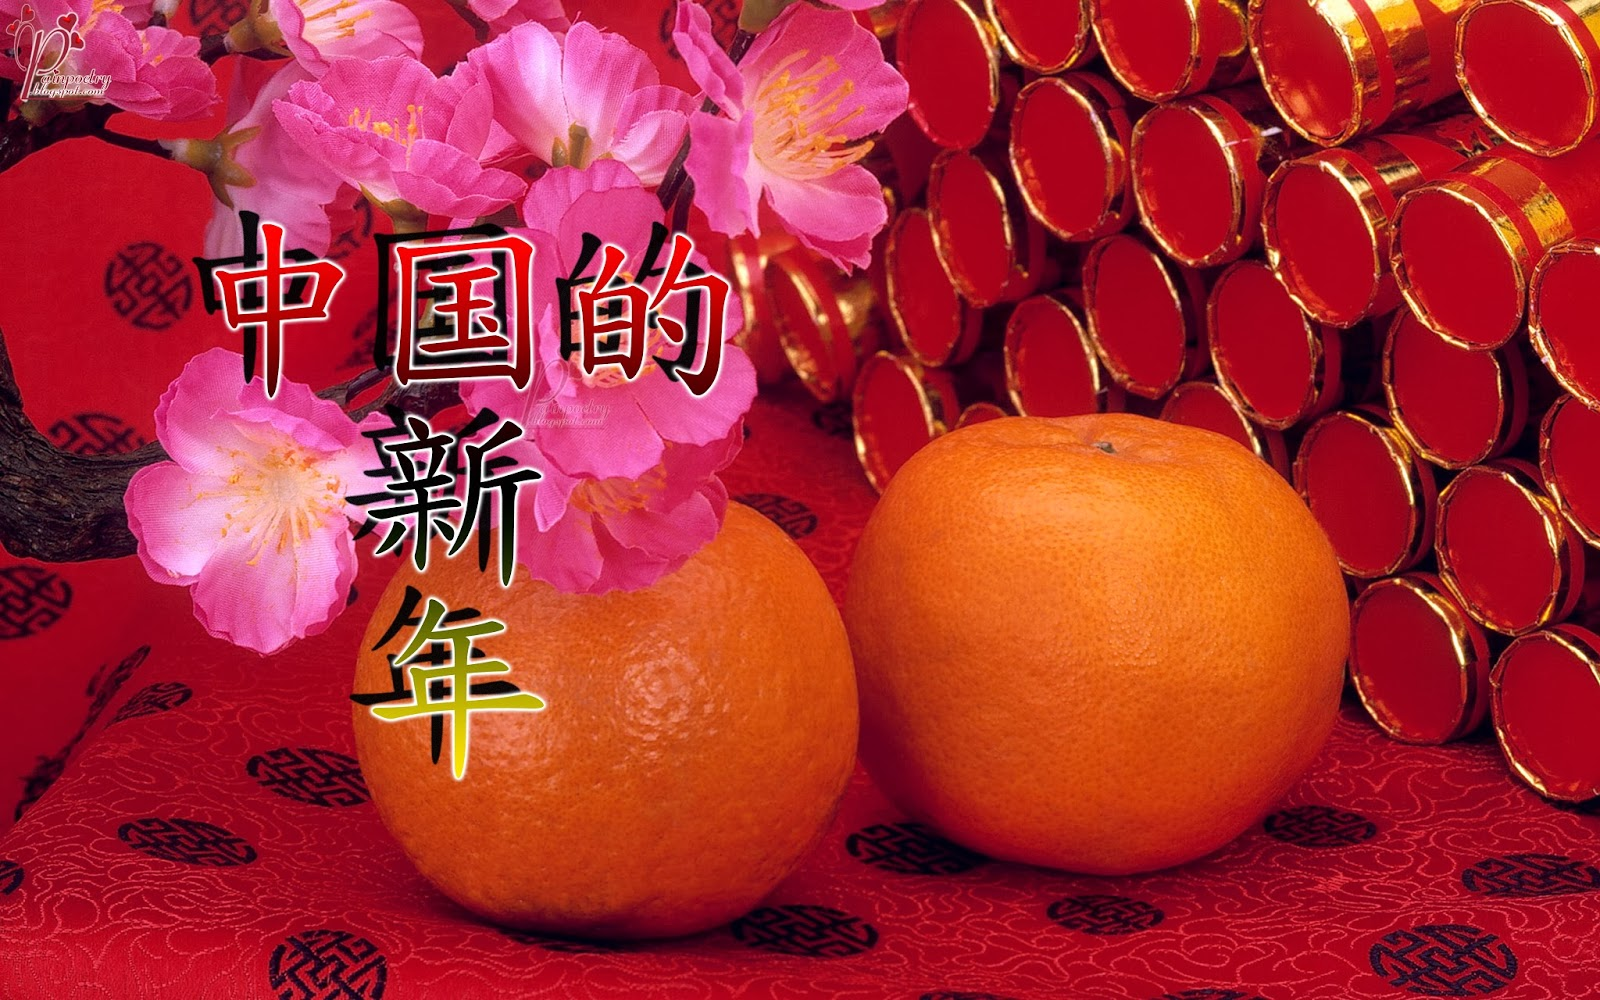 Happy-Chinese-New-Year-Image-With-Orrange-HD-Wide